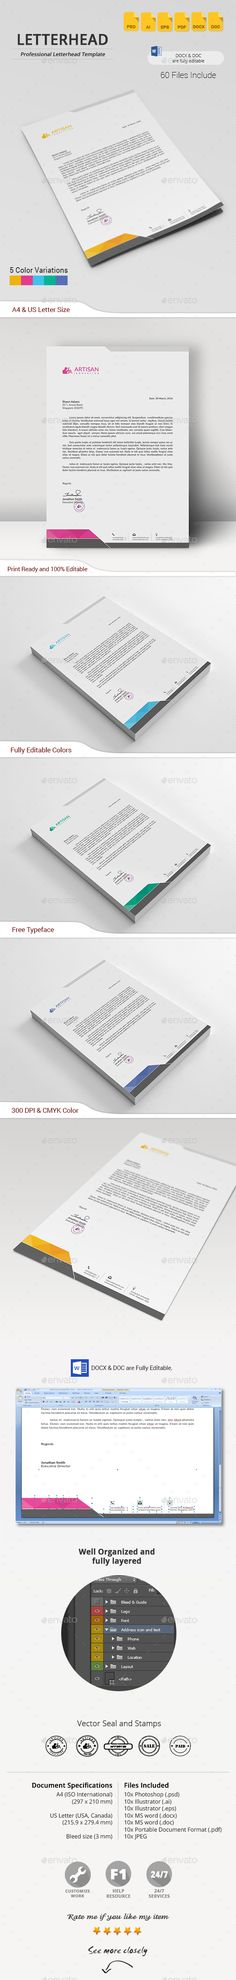 Letterhead - letterhead samples word